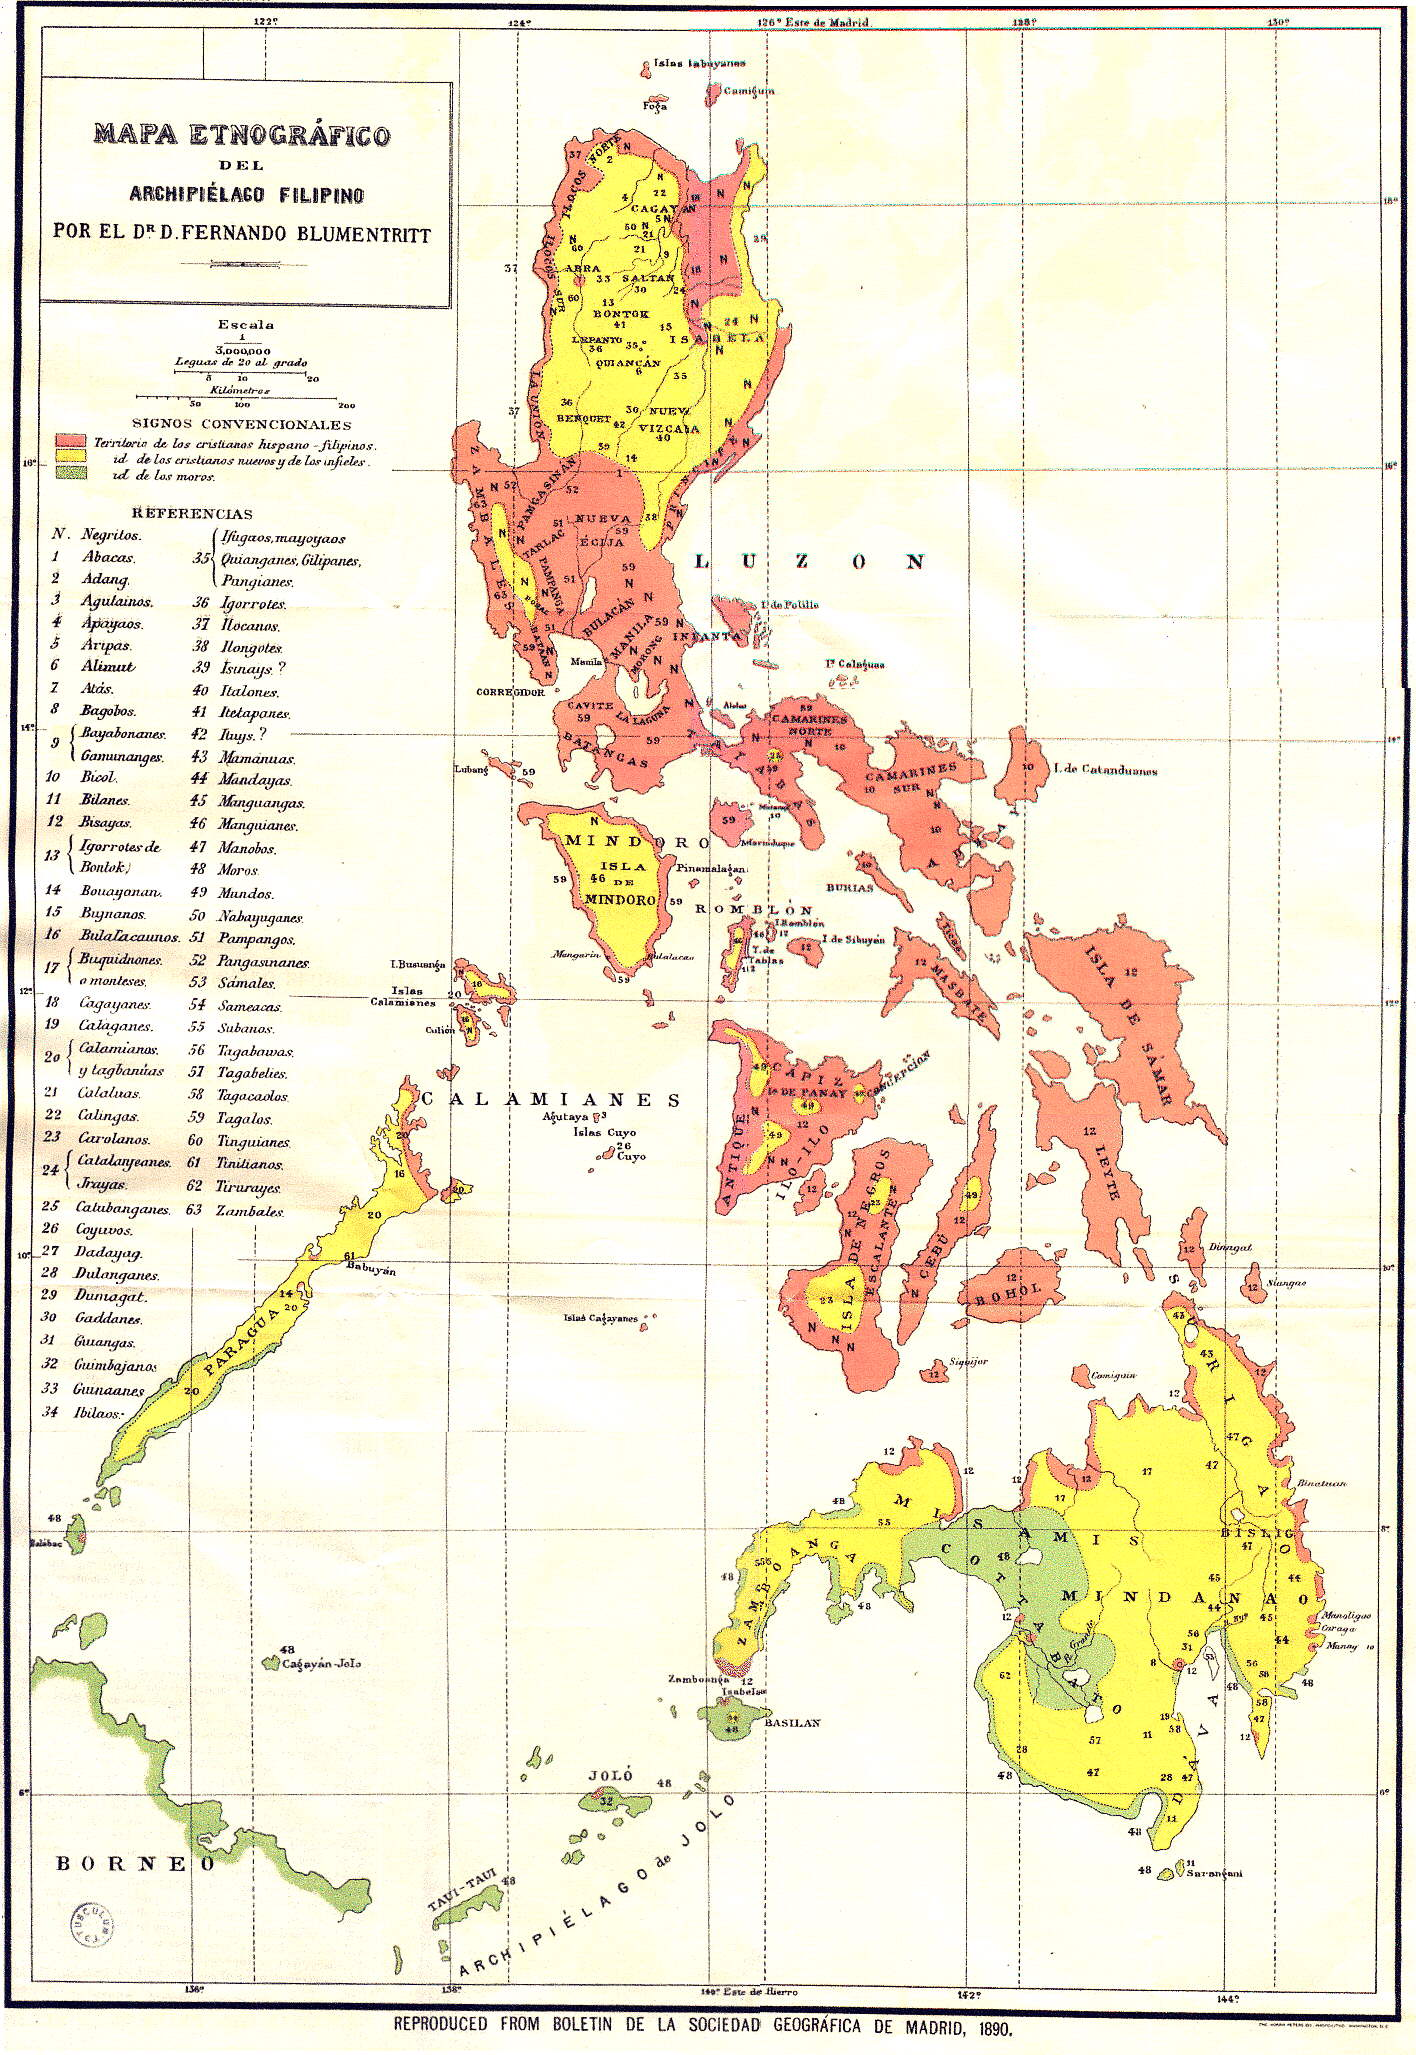 Spanish Philippines Map.Spanish Ethnographic Map Of The Philippines 1890 1416 2055 Mapporn